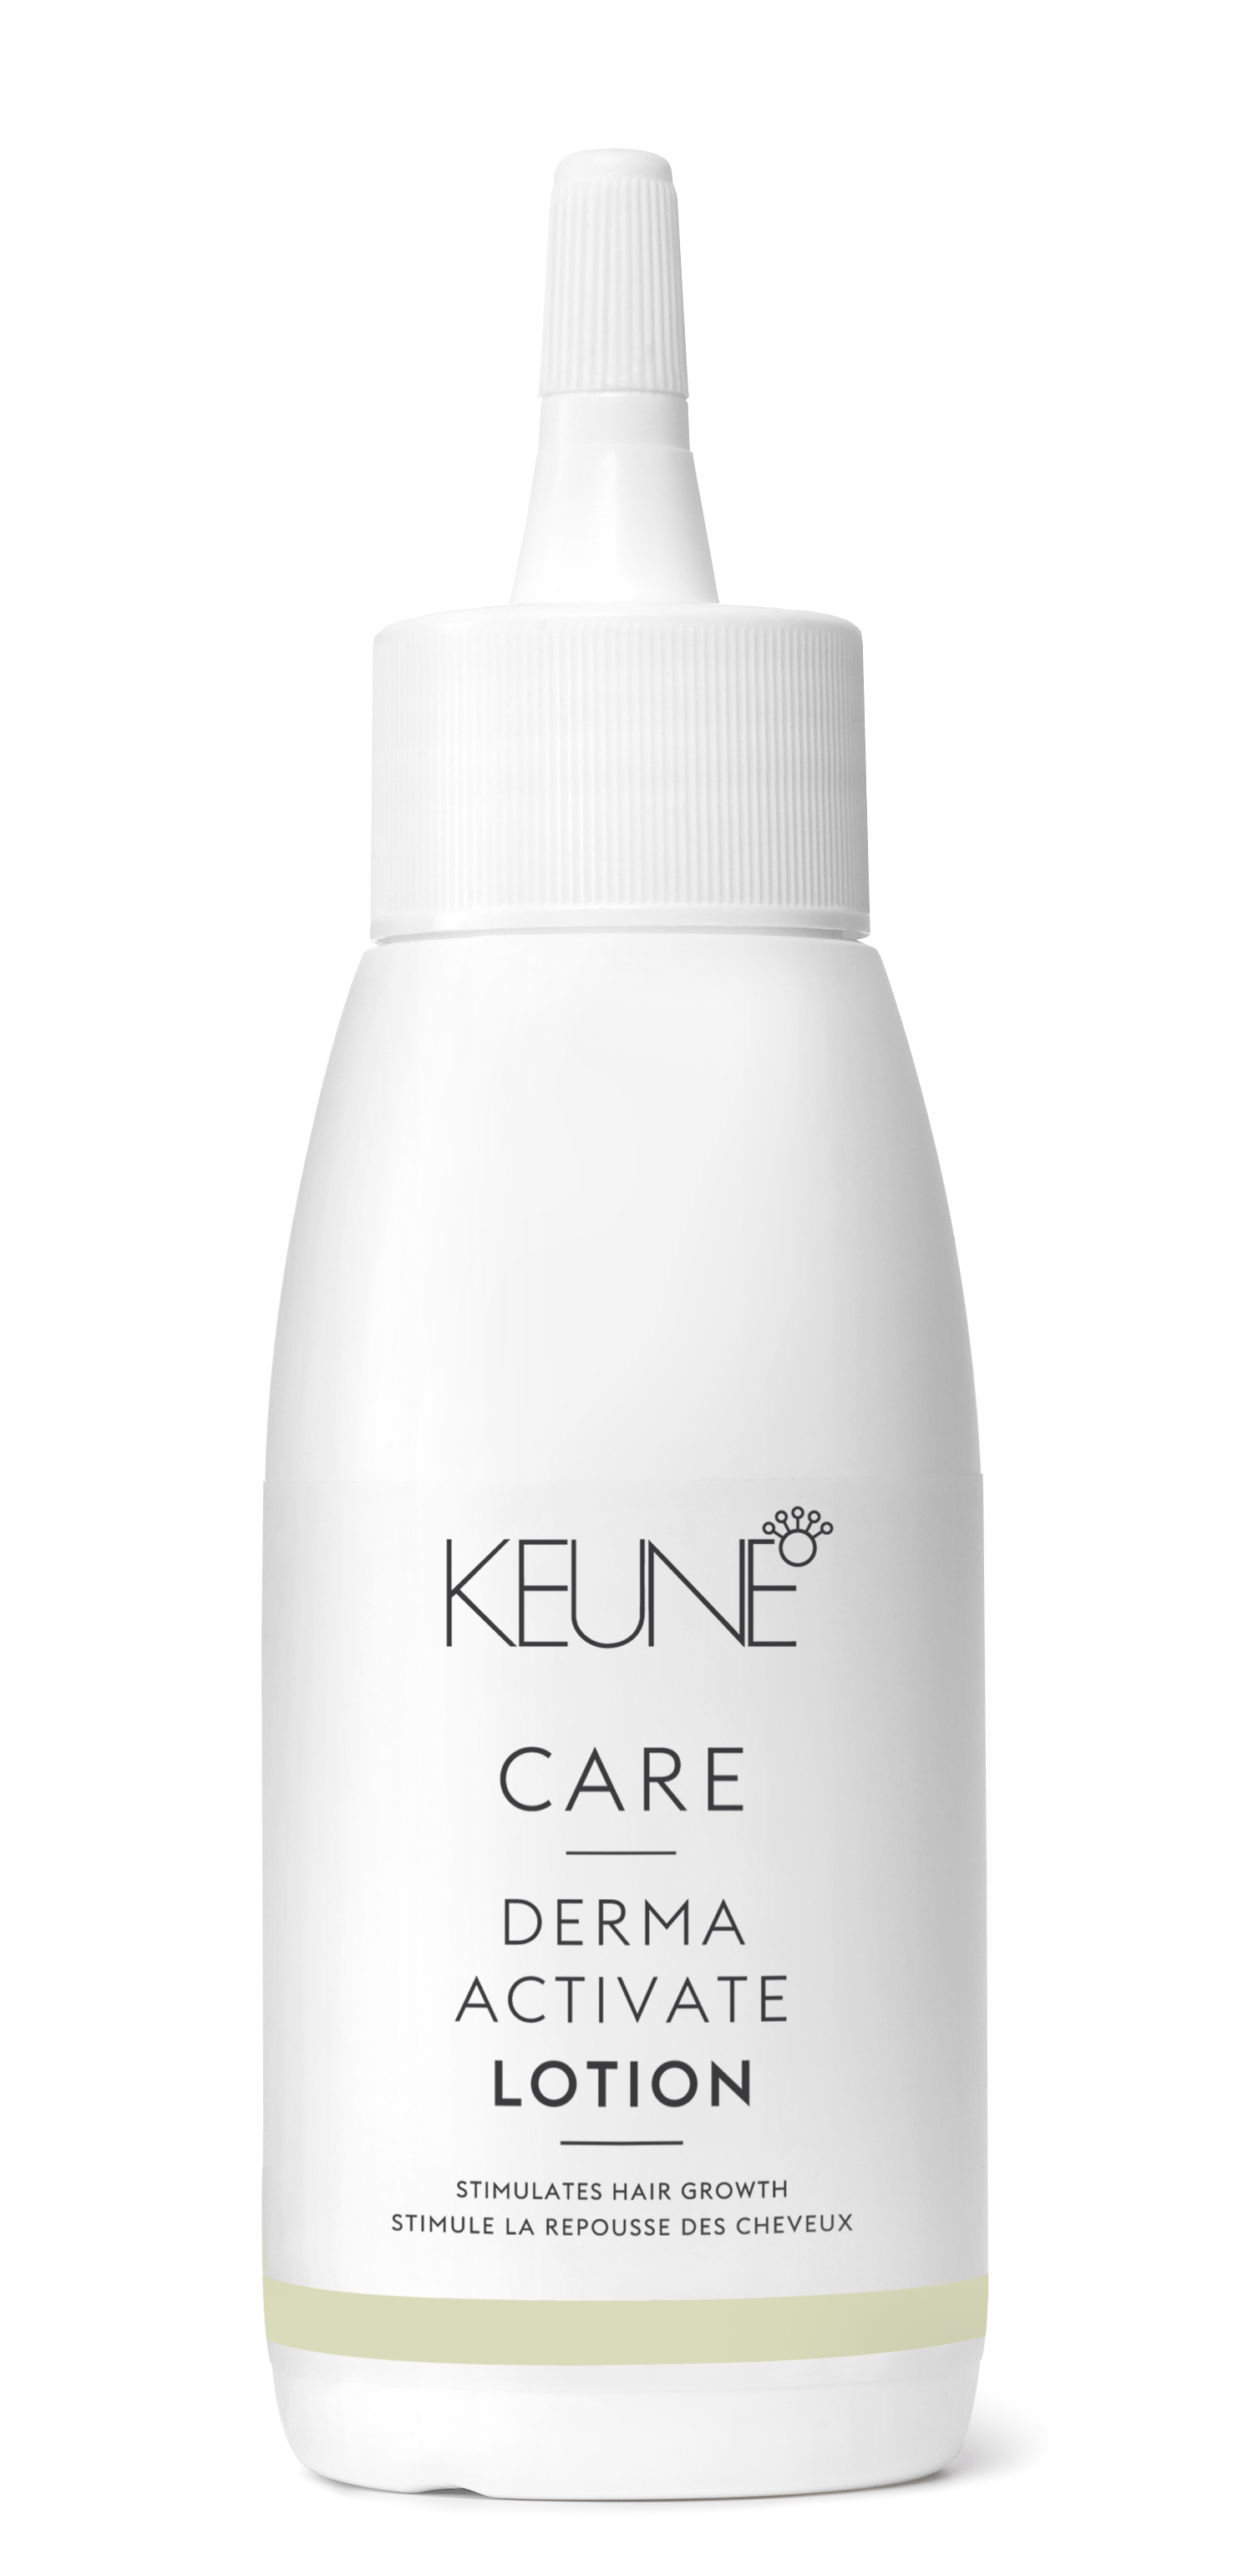 Care-Derma-Activate-Lotion-75ml-Flacon-highres